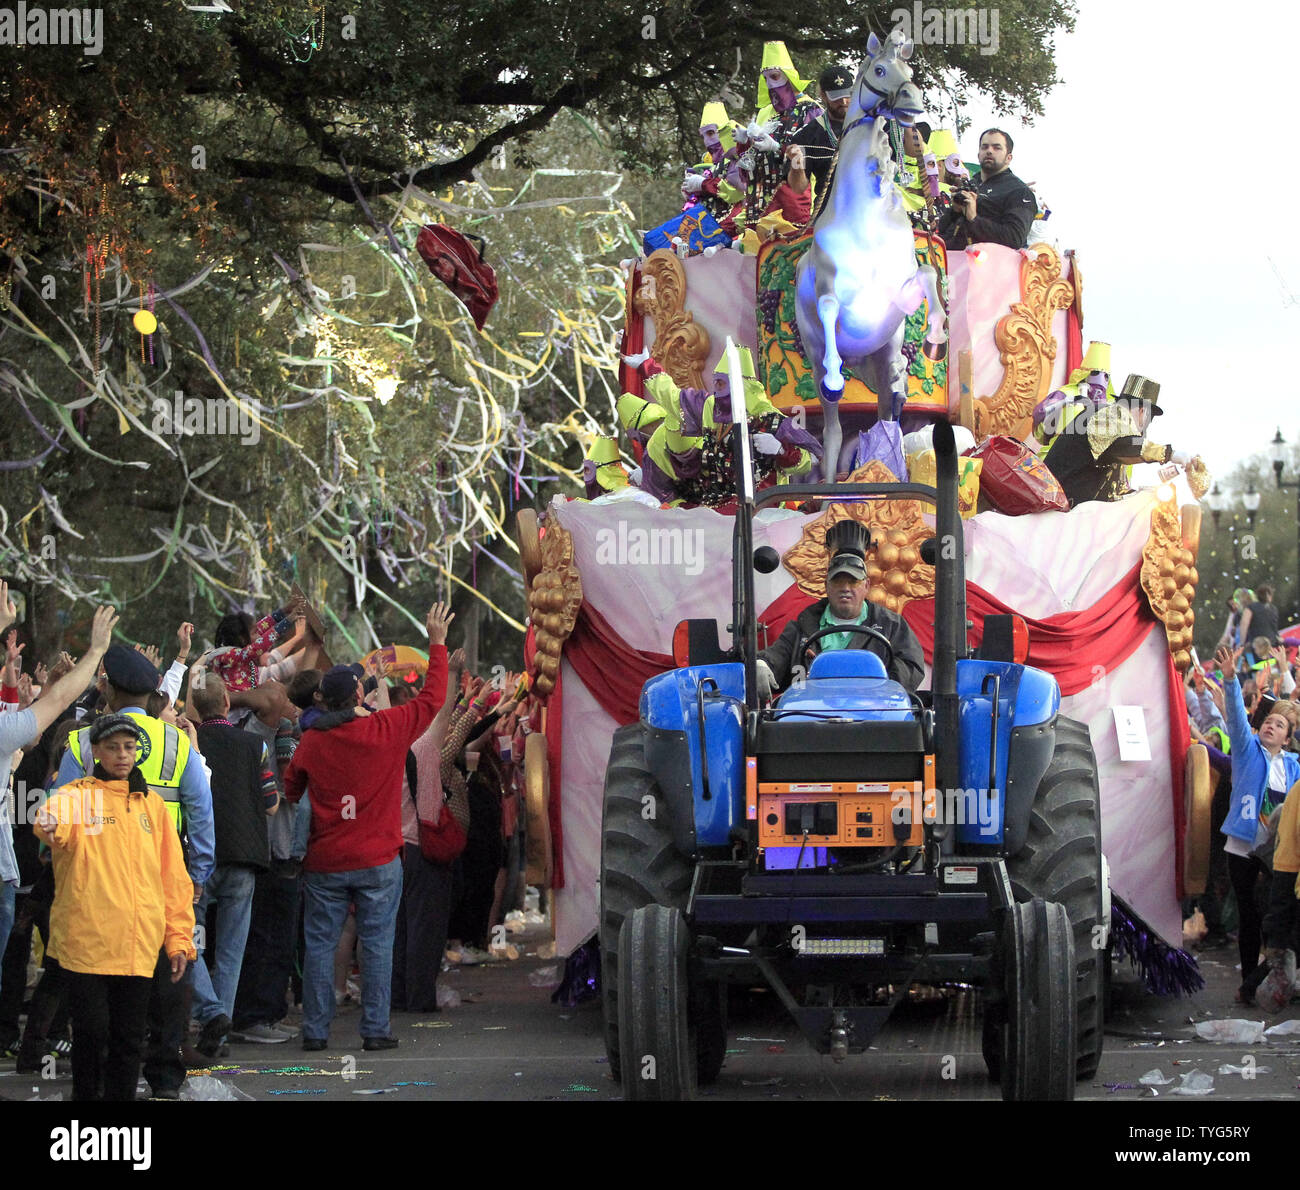 Float riders in the Krewe of Bacchus Mardi Gras parade toss beads to the crowd on Napoleon Avenue in New Orleans Sunday, February 26, 2017. The Krewe of Bacchus has been rolling on the traditional Uptown route since 1969. Photo by AJ Sisco/UPI Stock Photo